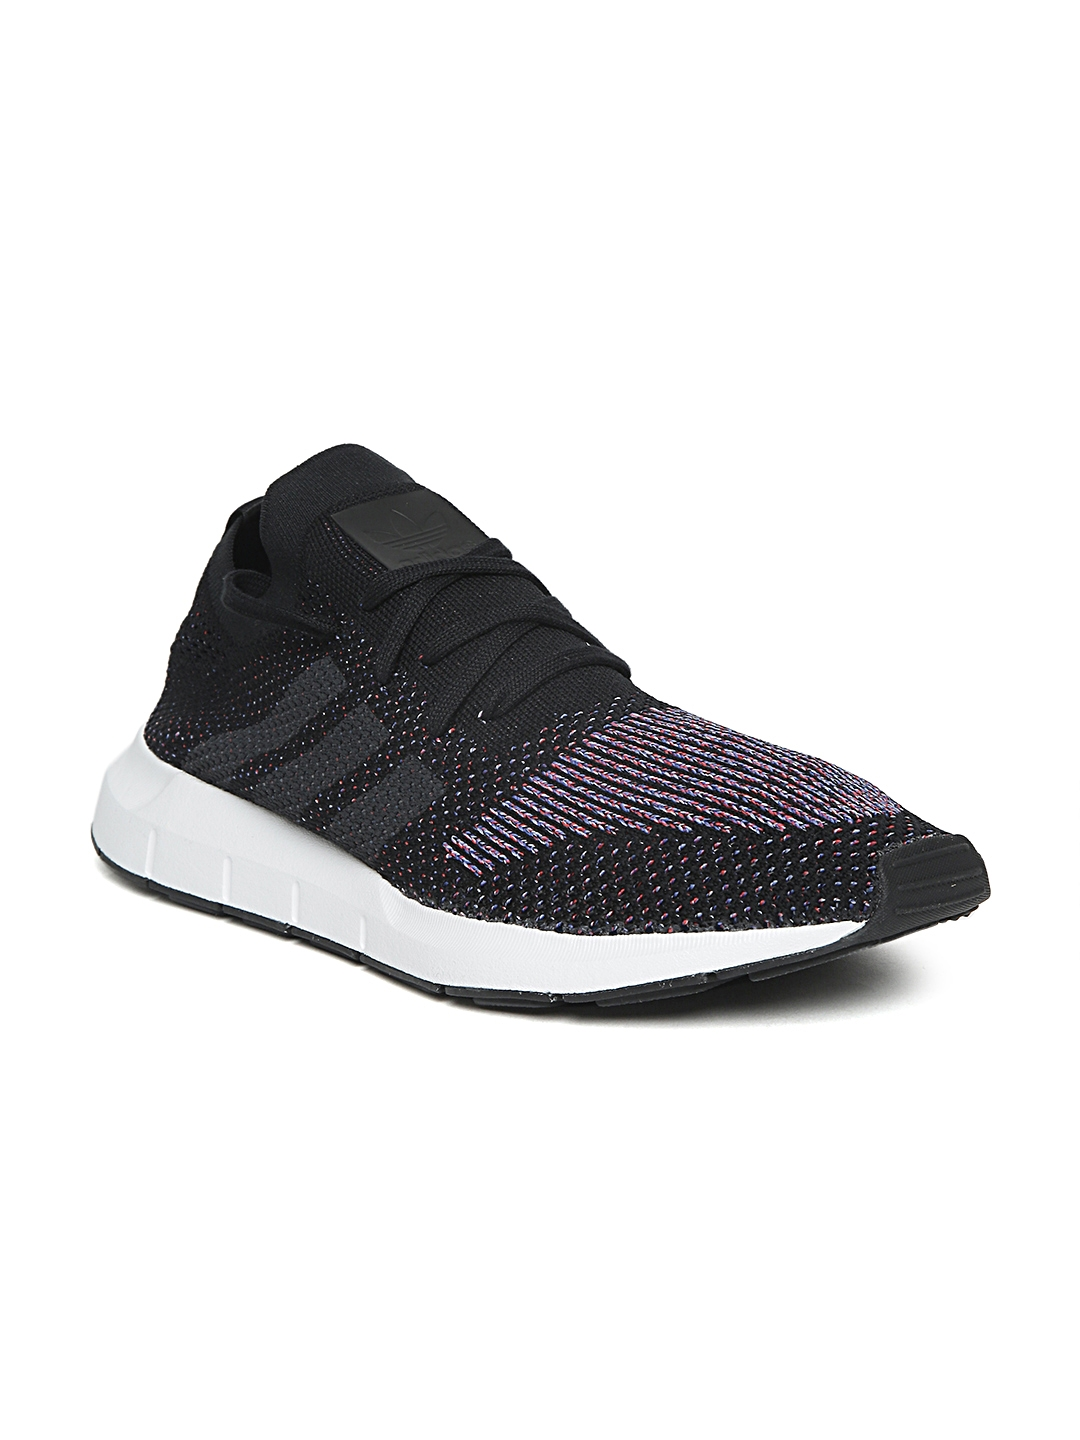 5e271ec8e9adf Buy ADIDAS Originals Men Black Swift Run PK Woven Design Sneakers ...